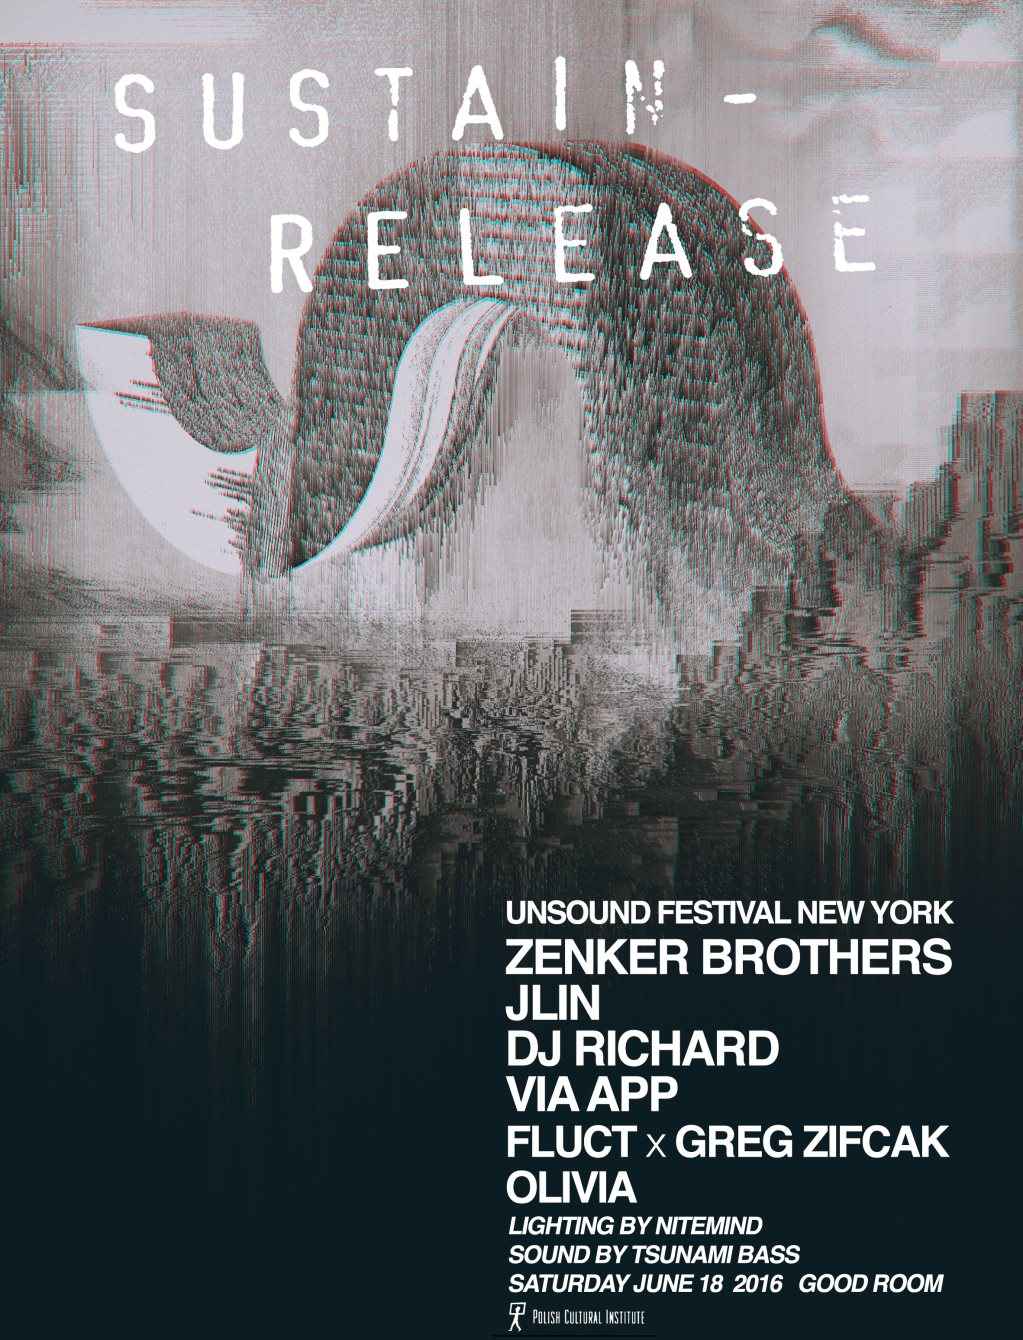 RA: Sustain-Release x Unsound Festival NY: Zenker Brothers